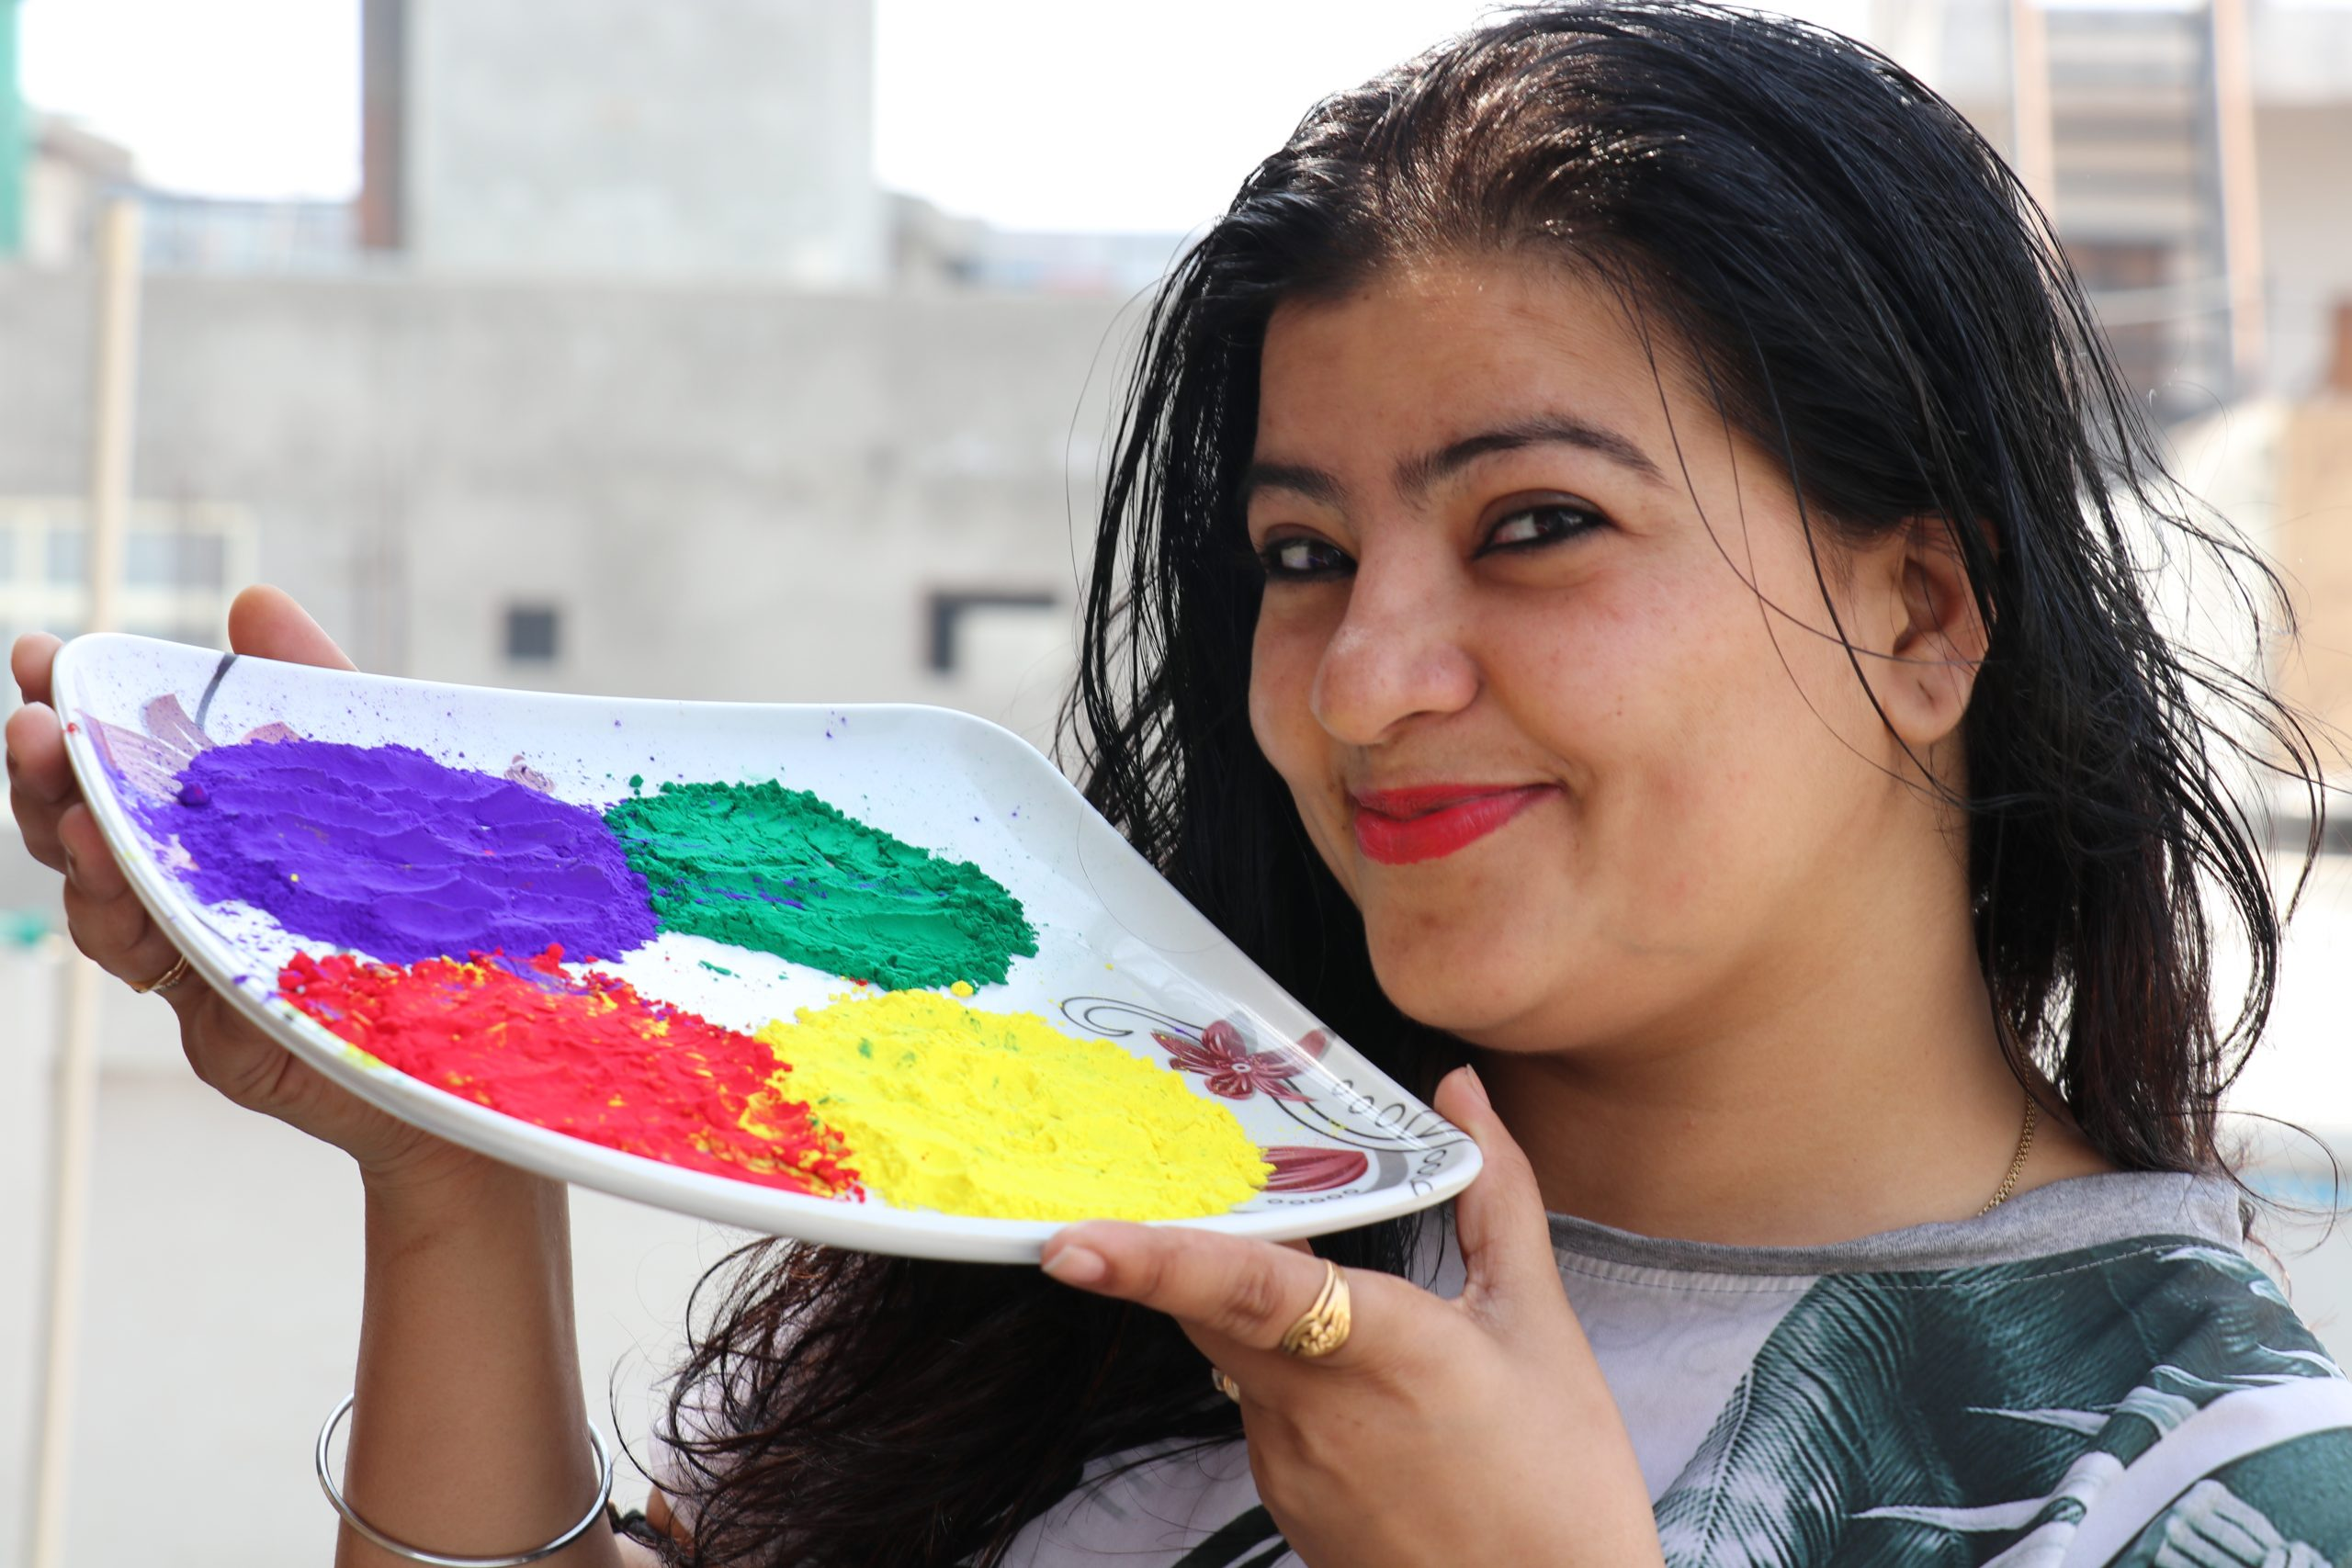 A happy woman with a tray of Holi colors